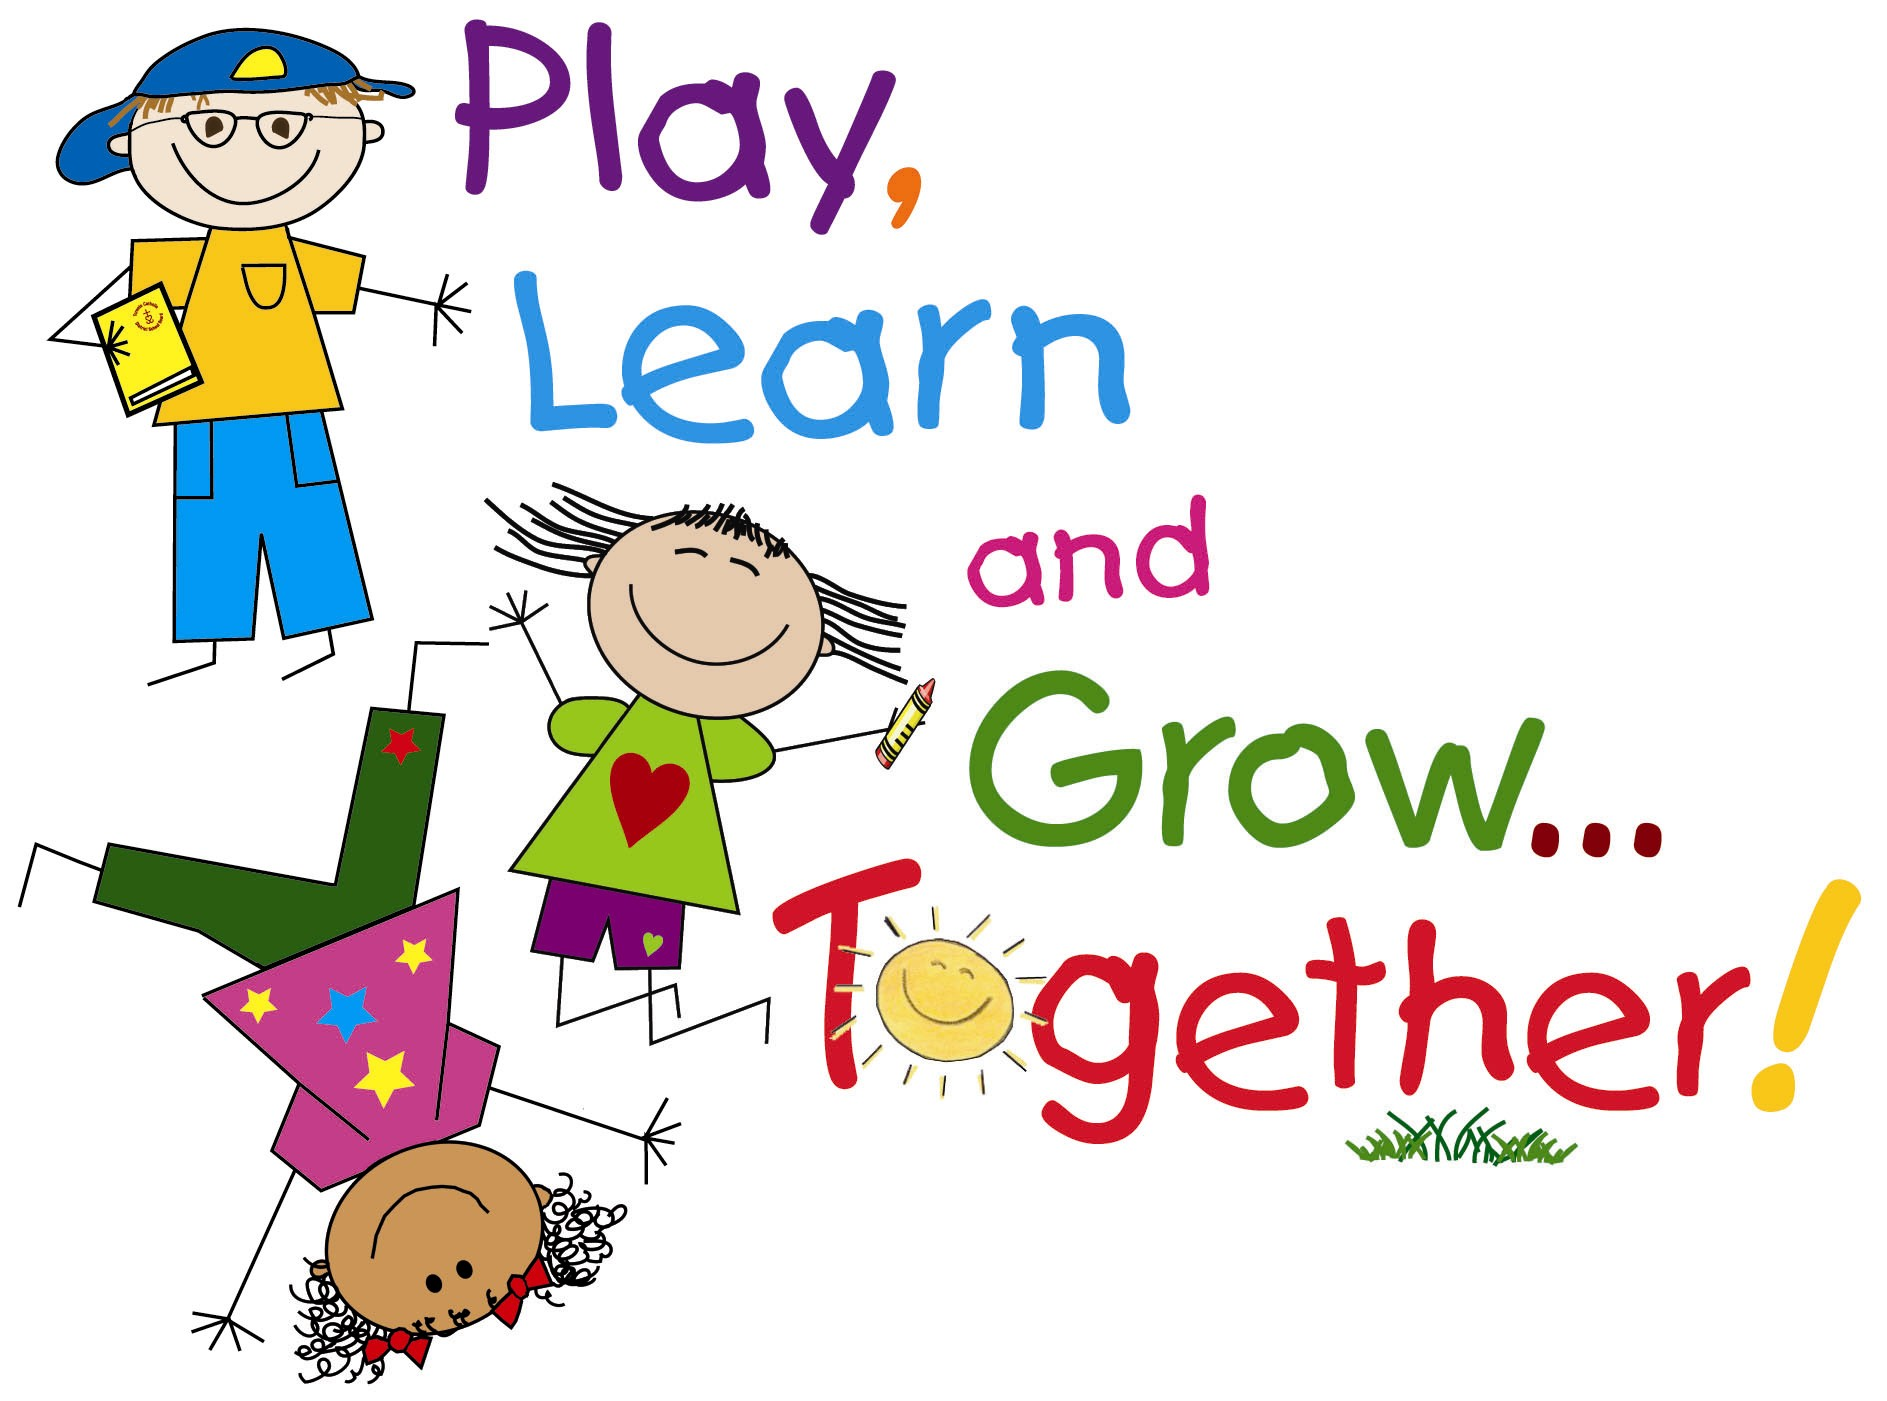 cartoon children playing with the word play learn and grow ... together